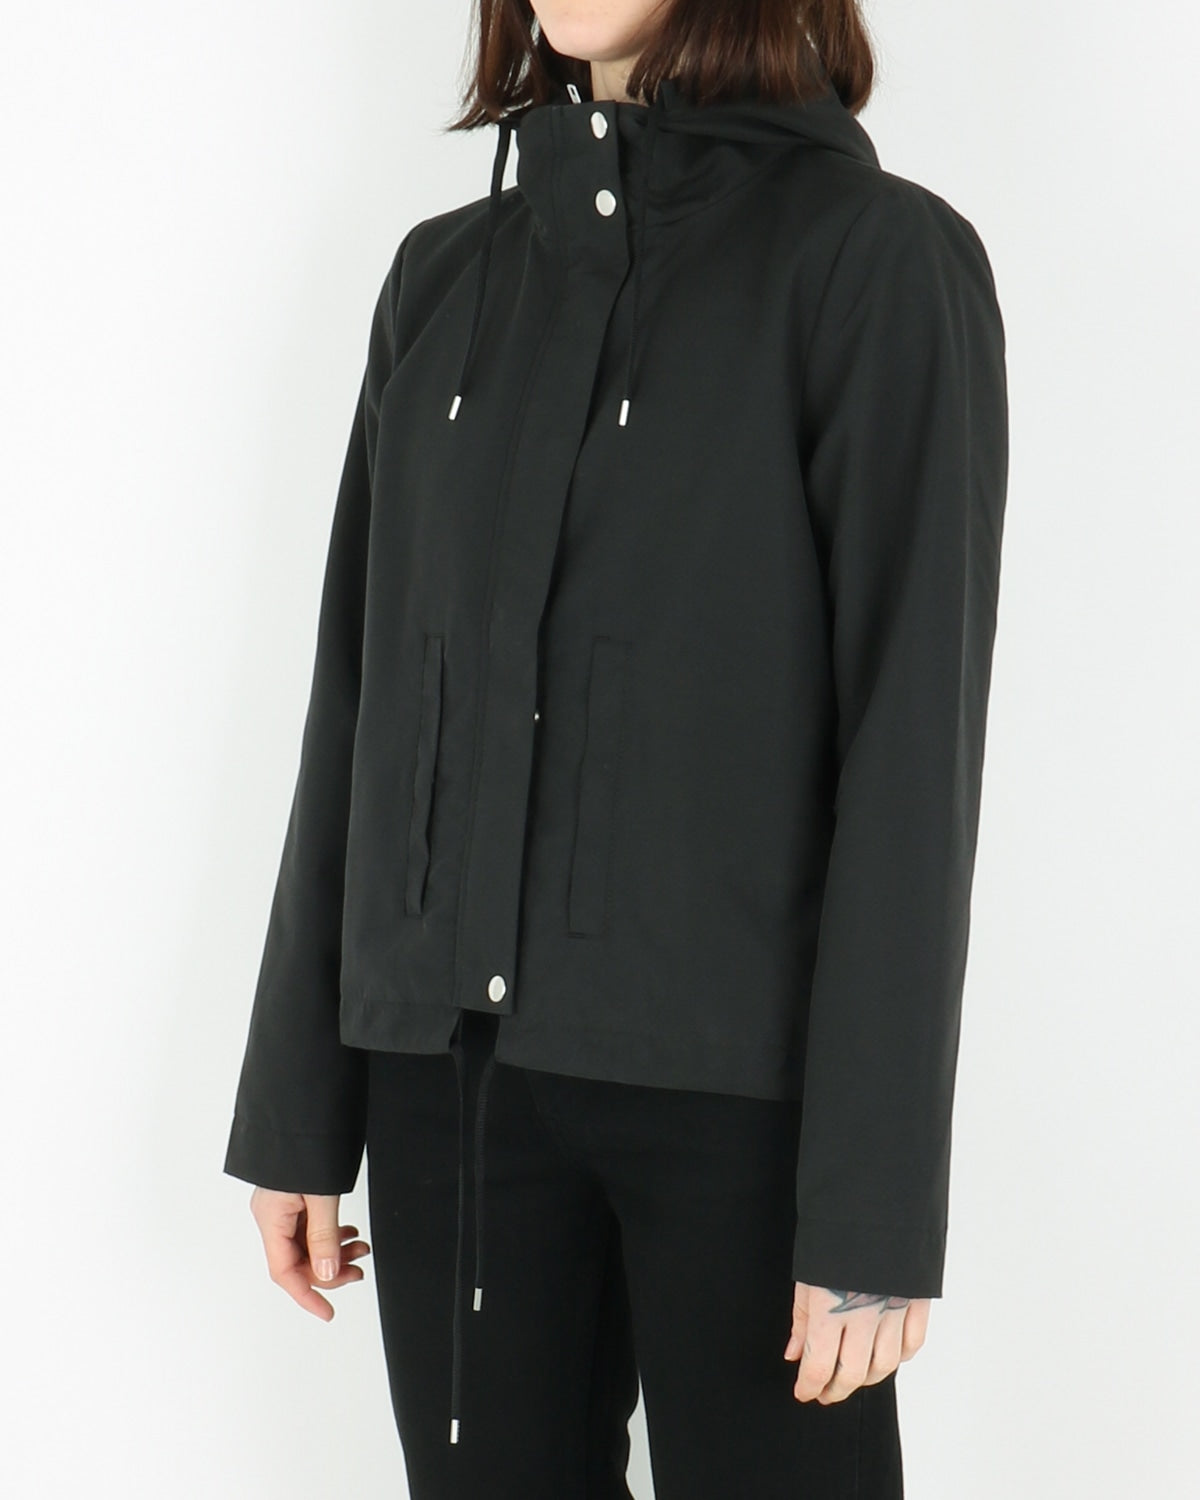 selfhood_jacket light 77082_black_view_3_4